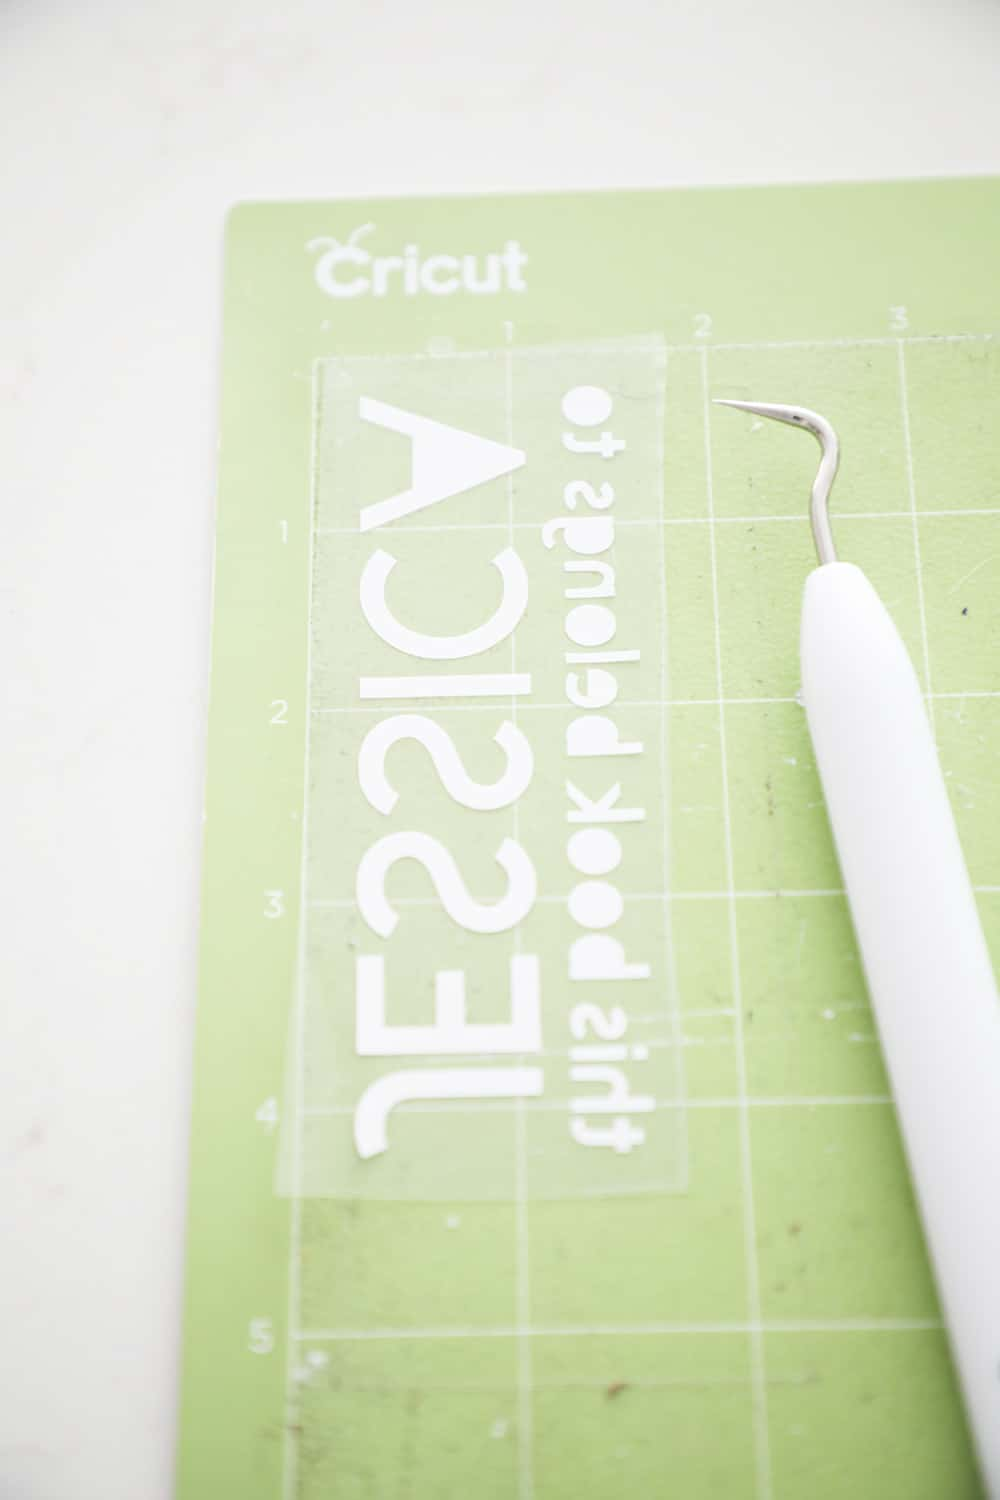 iron on text on a green cricut mat next to a weeding tool